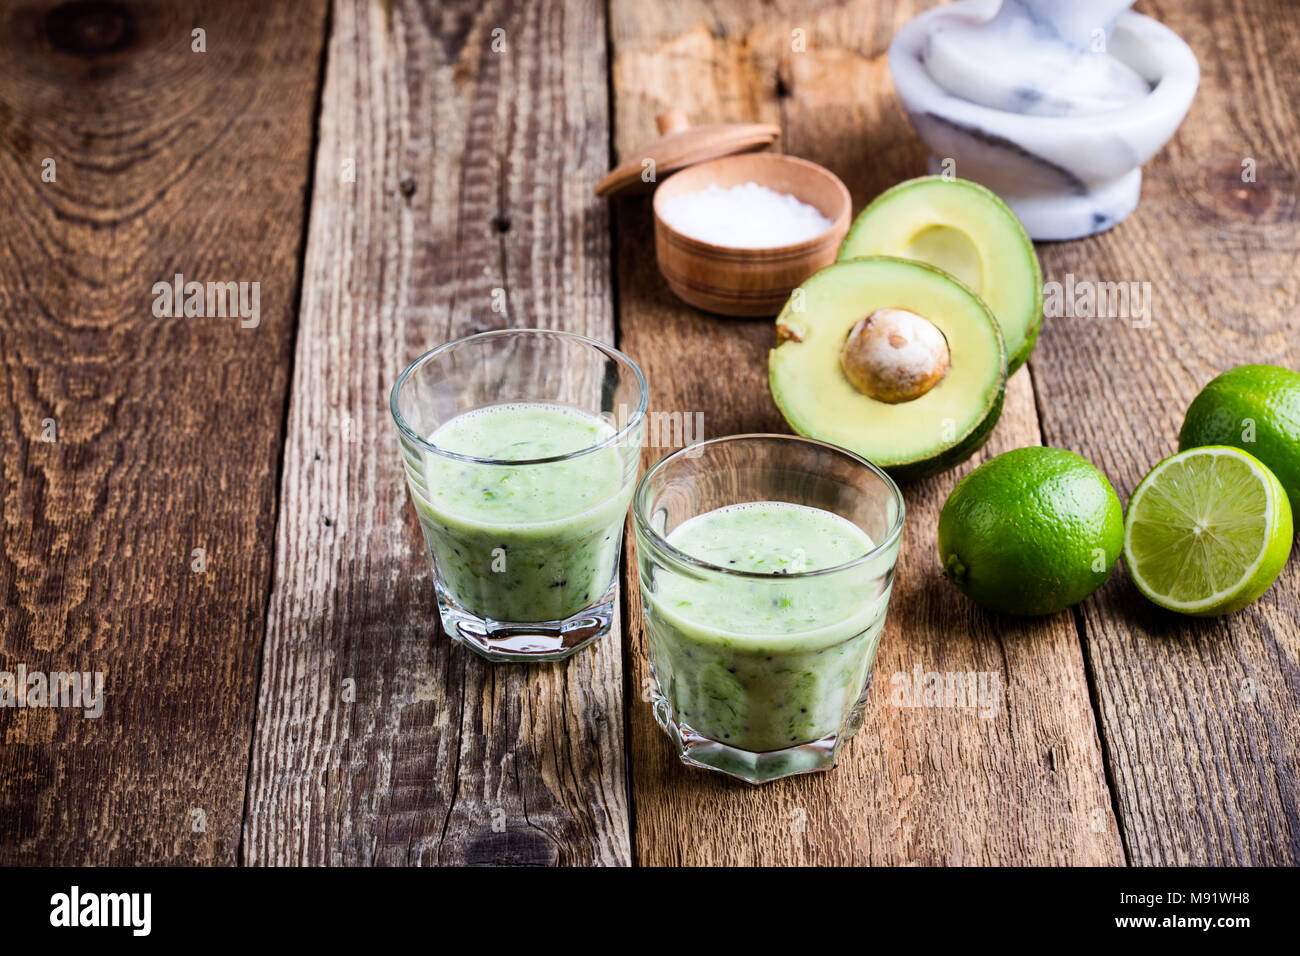 Guacamole dip style green vegetables smoothie in glasses with ingredients avocado and lime on rustic wooden table, savory healthy dairy drink with org - Stock Image